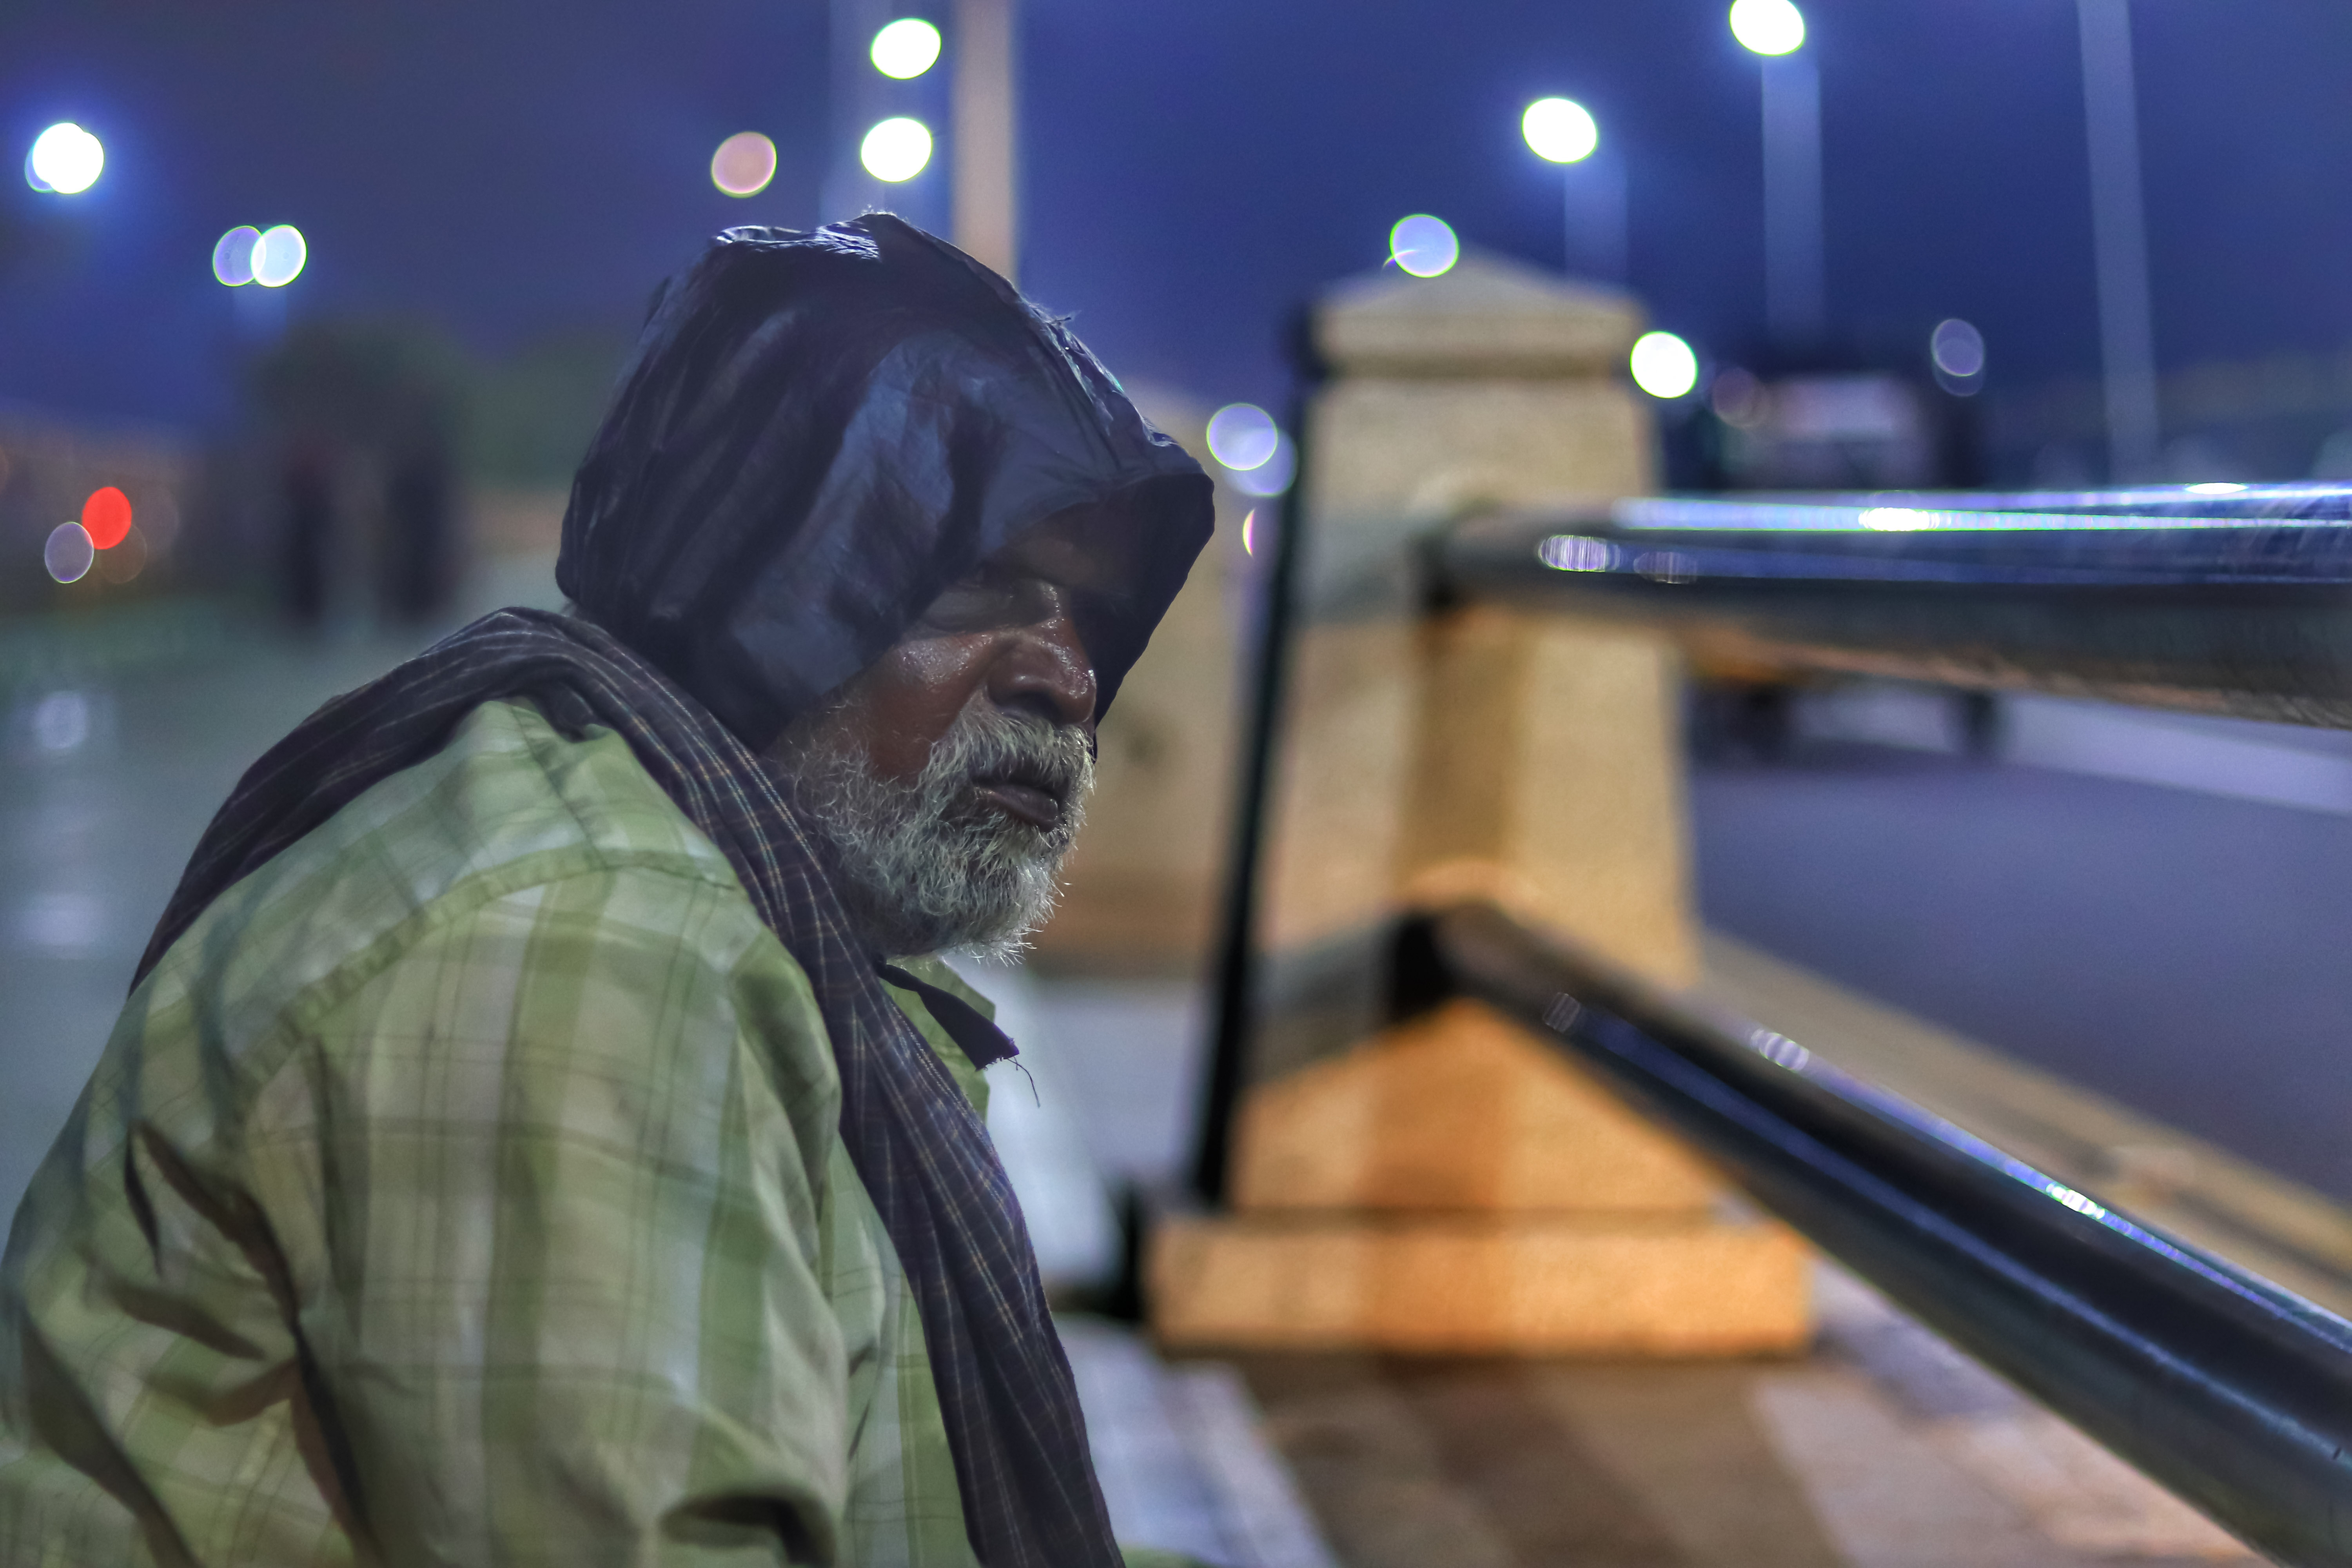 Unseen faces of chennai night life